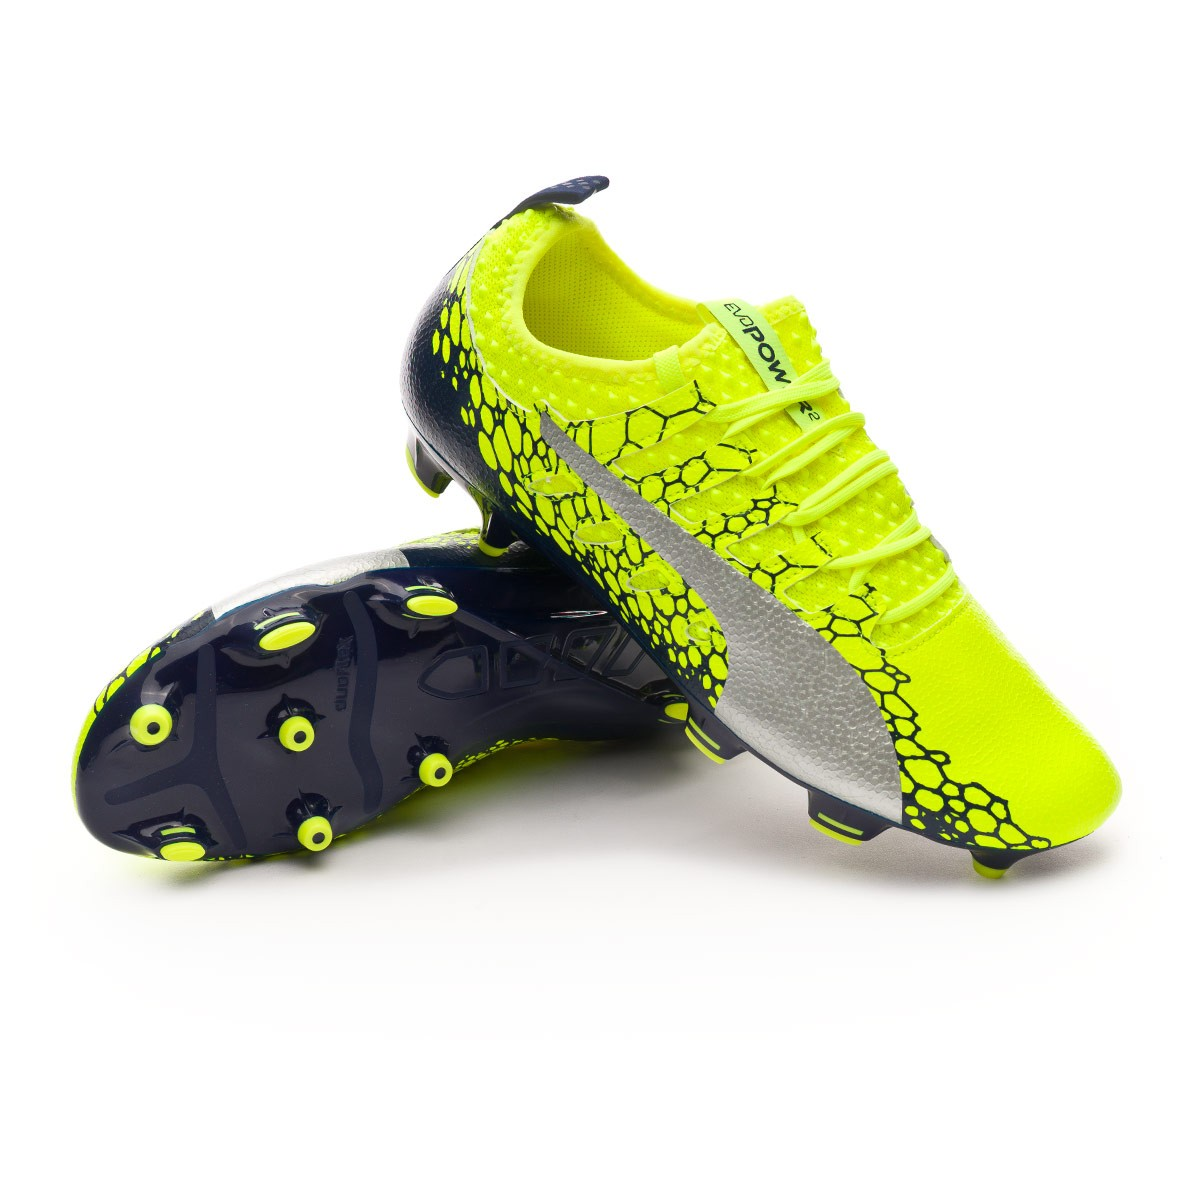 Chuteira Puma evoPOWER Vigor 2 Graphic FG Safety yellow-Silver-Blue depths  - Loja de futebol Fútbol Emotion f6c1539dfc4cf